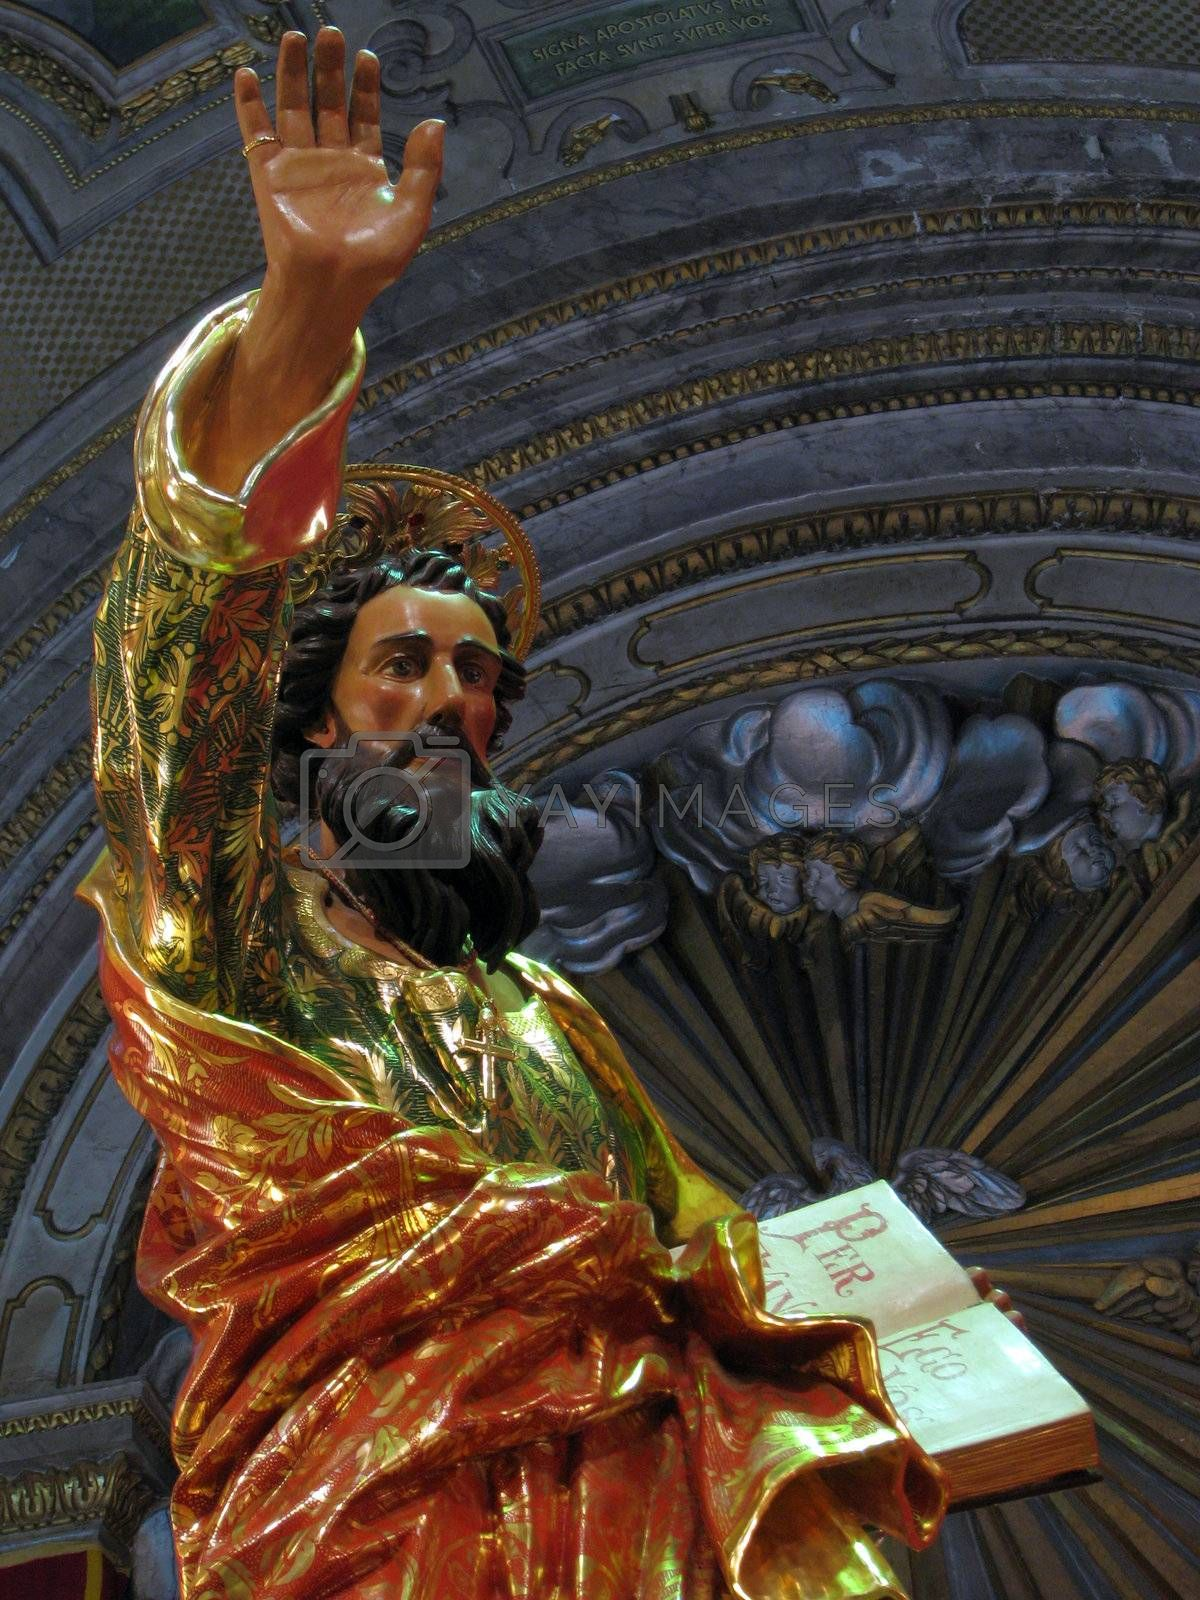 A detail of the statue of Saint Paul displayed in the parish church of Rabat, Malta.